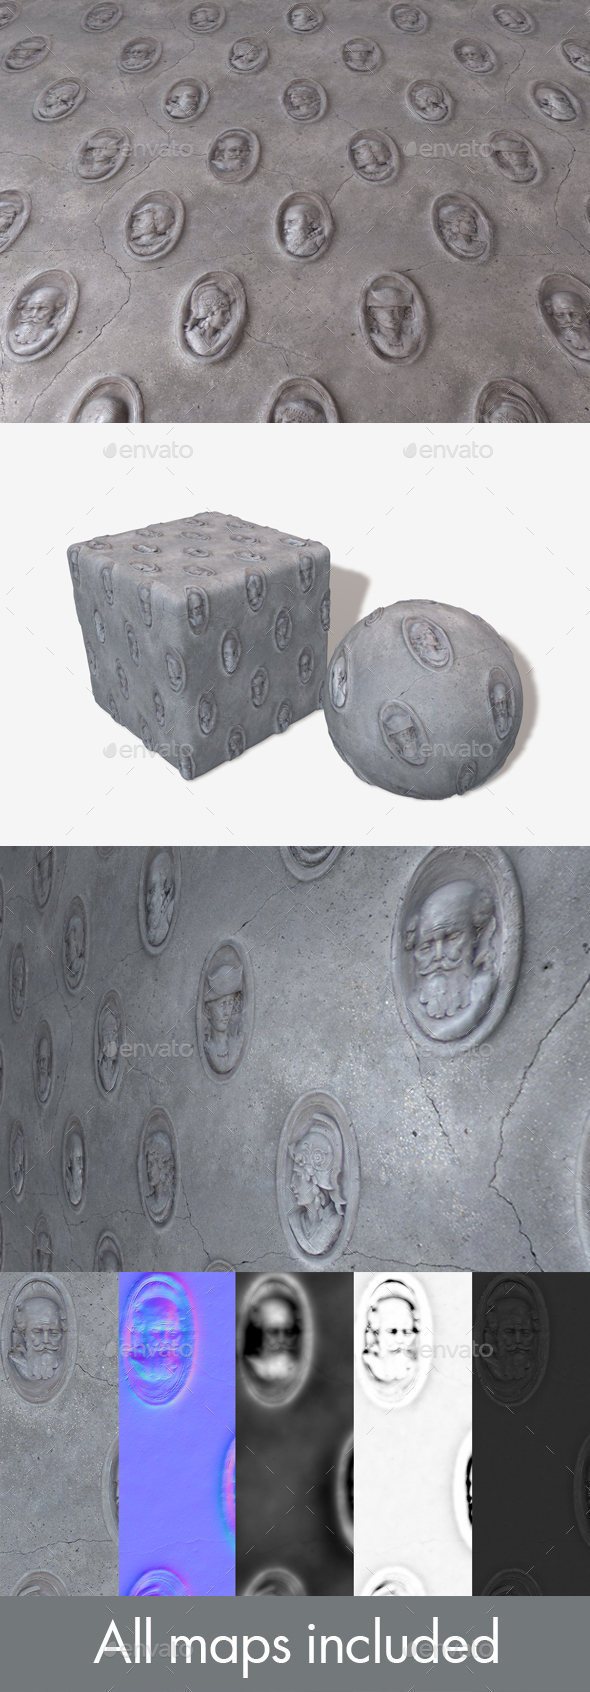 3DOcean Sculpted Heads Wall Seamless Texture 19984595